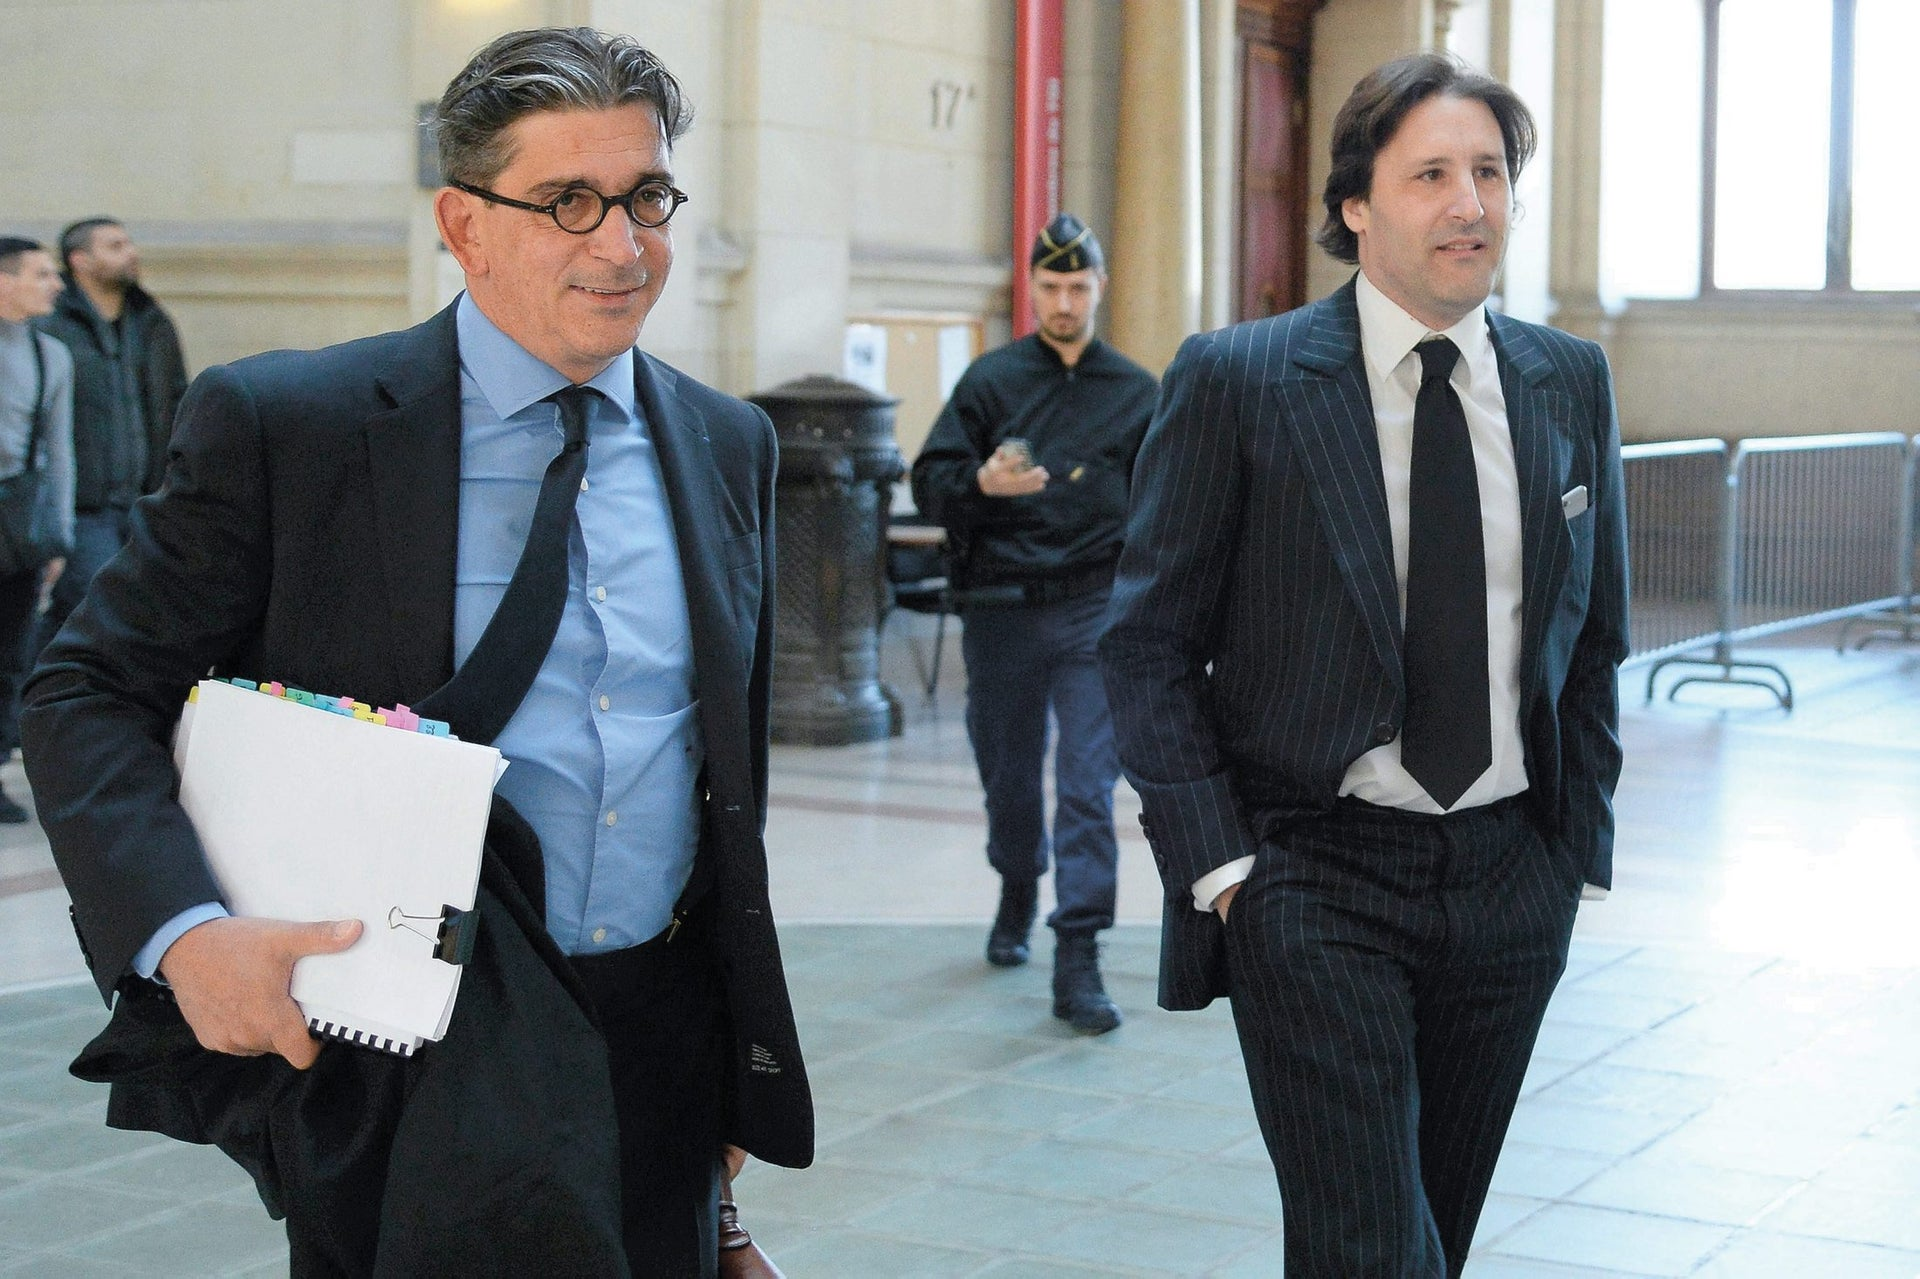 Arnaud Mimran, right, and his lawyer at the Paris courthouse, on May 25, 2016, to attend his trial.